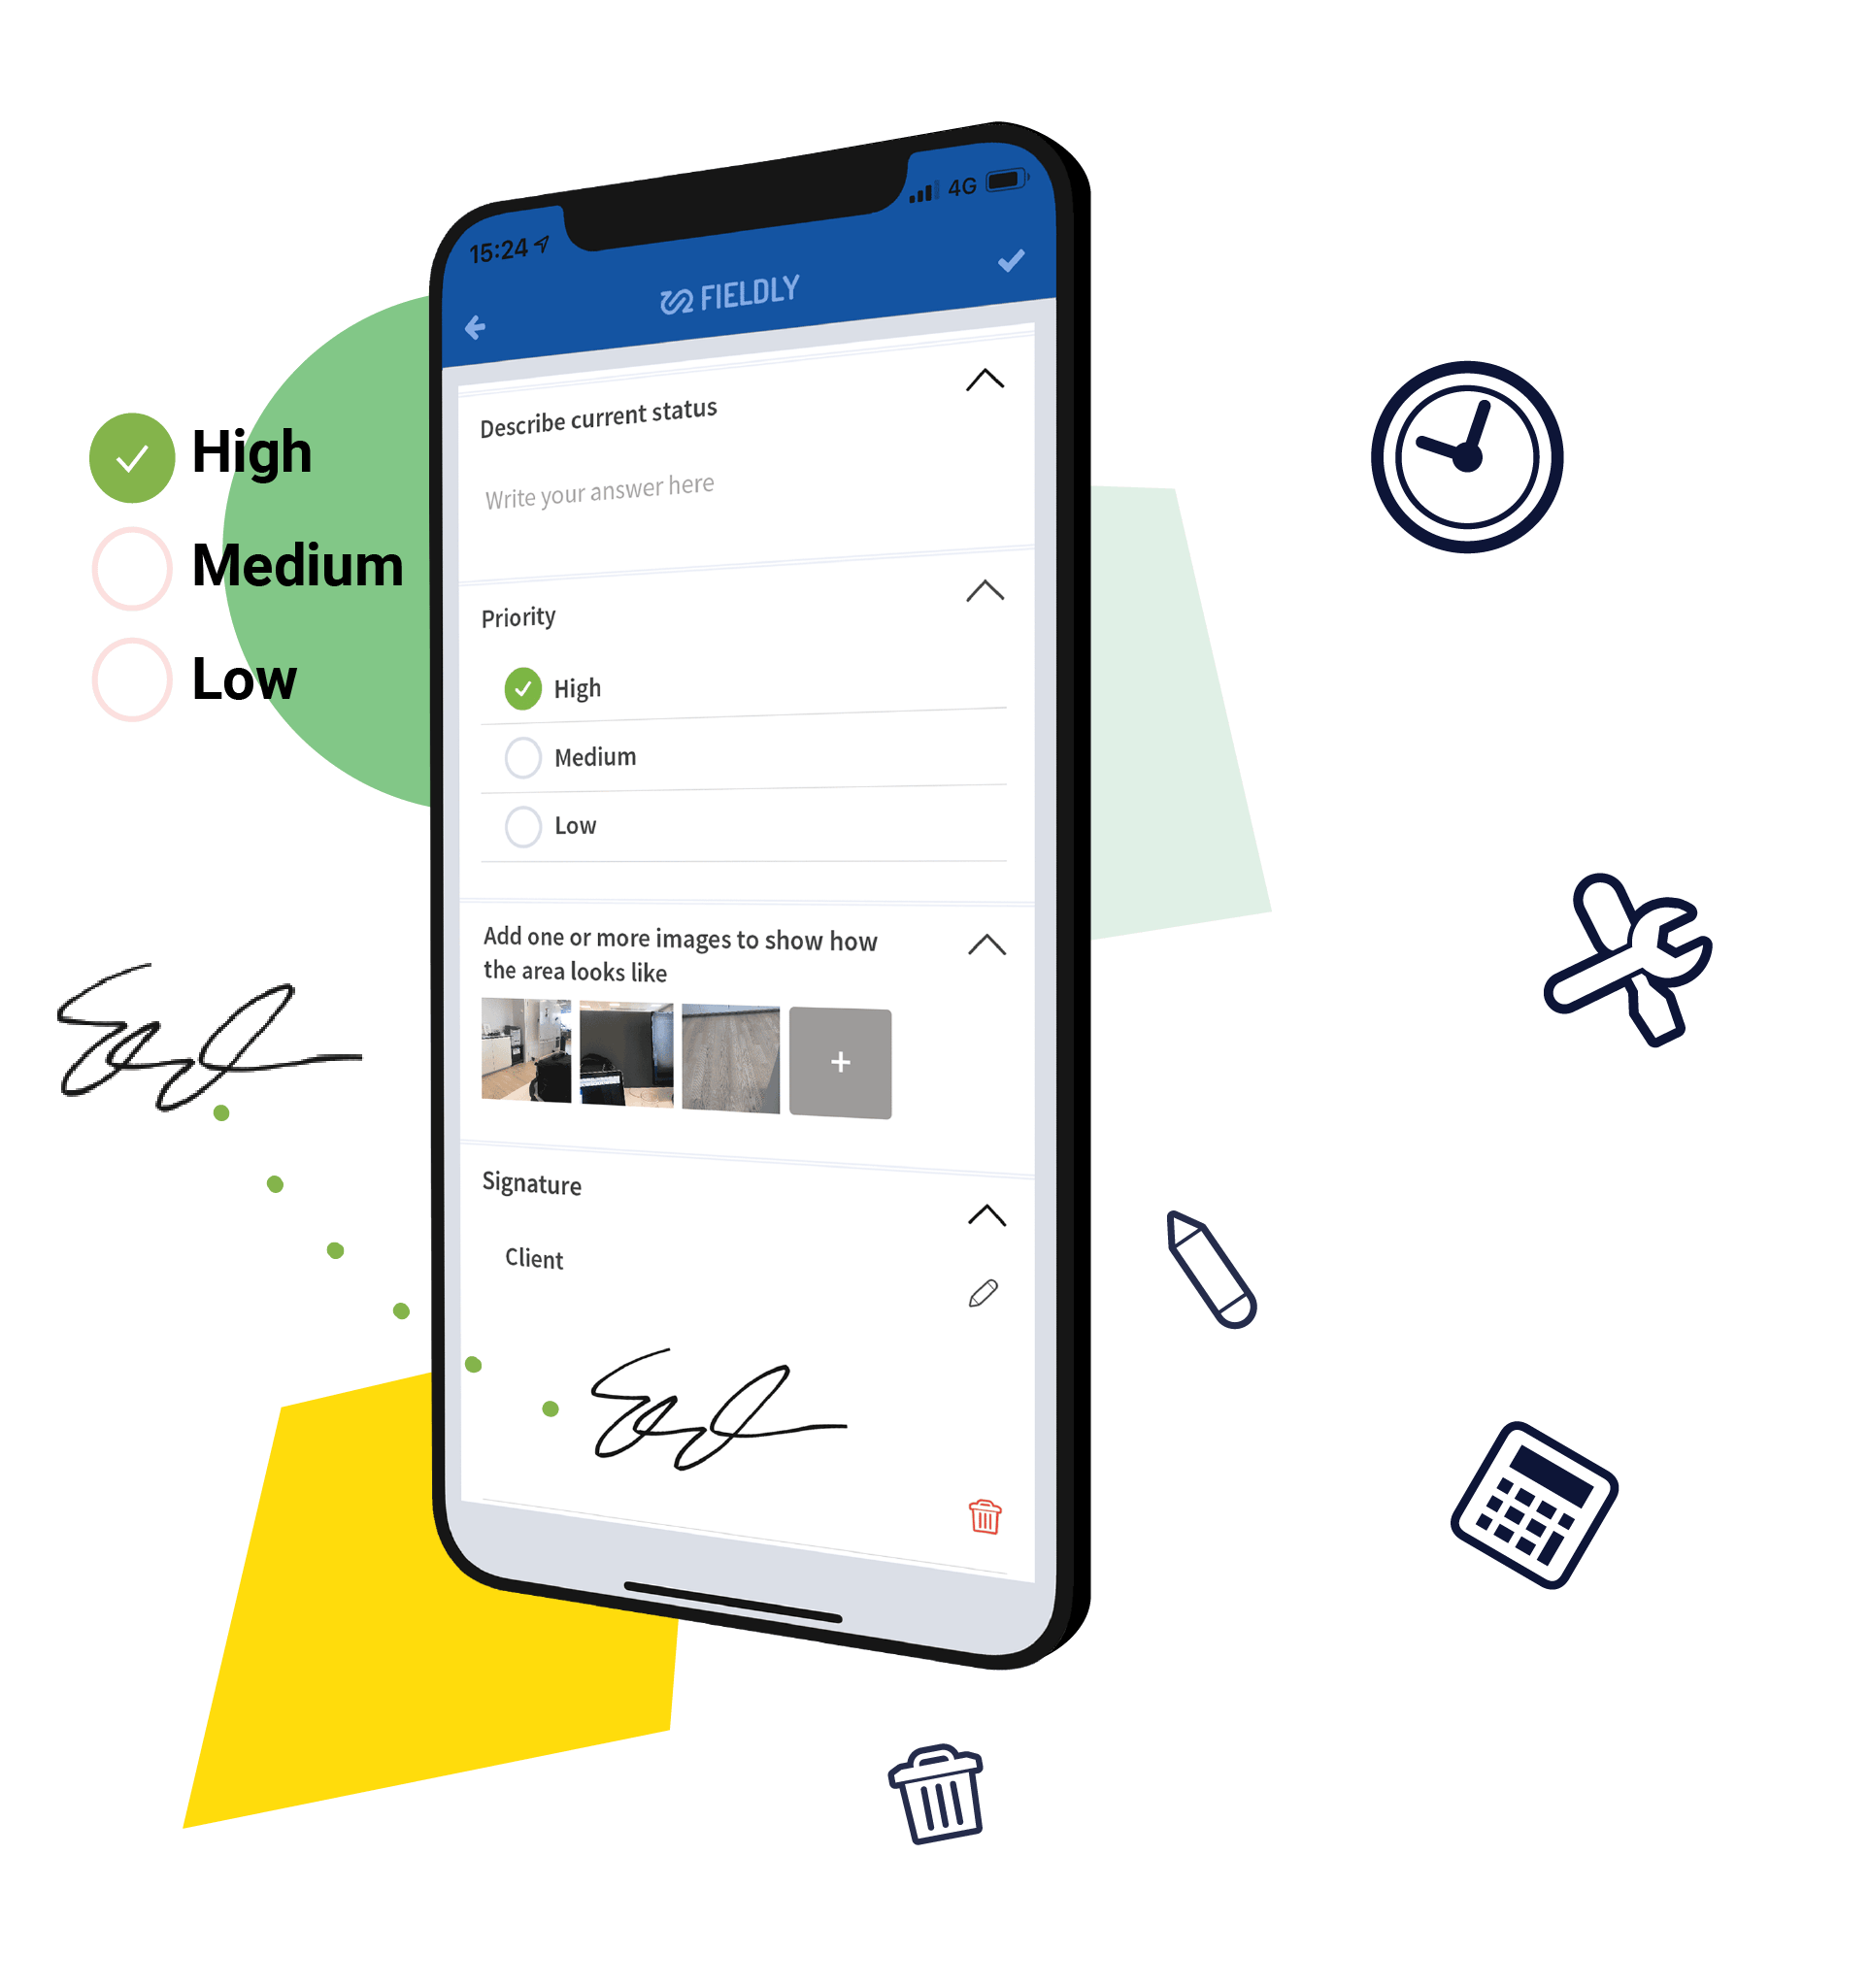 A phone with Fieldly app opened which shows checklists